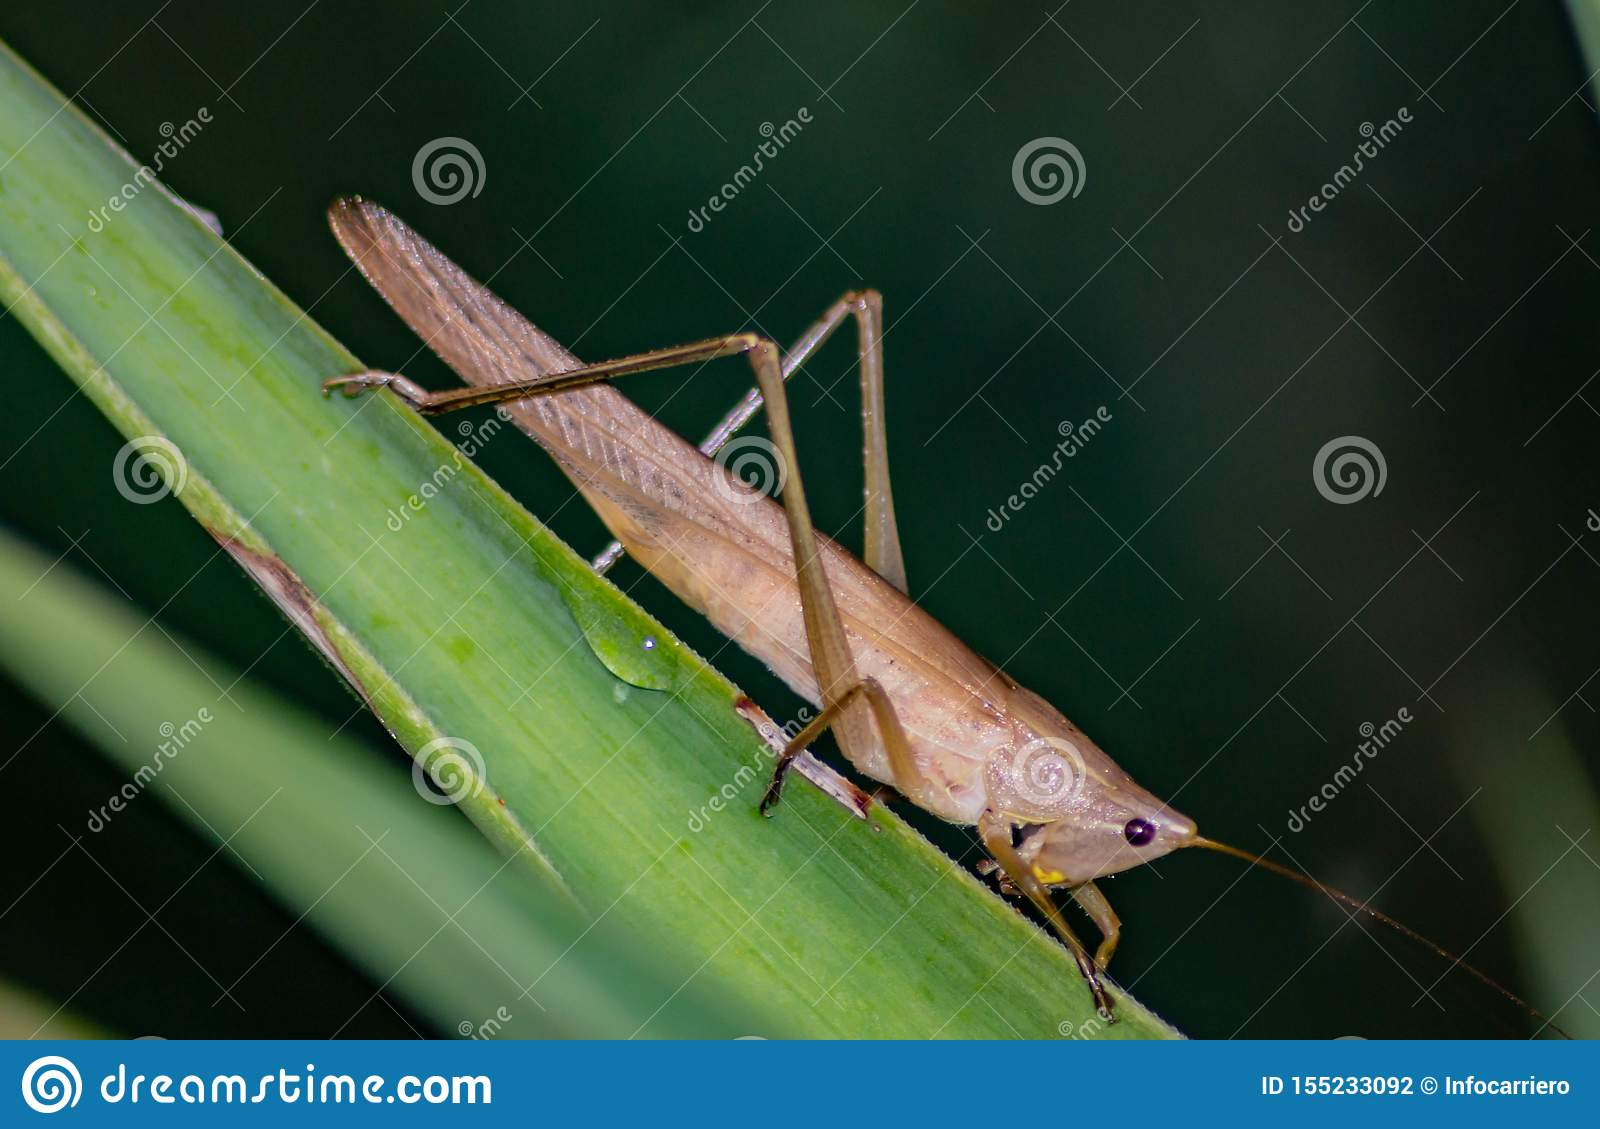 Ruspolia nitidula This grasshopper lives in wet and grassy areas but adapts to many habitats including the urban one. The frinito